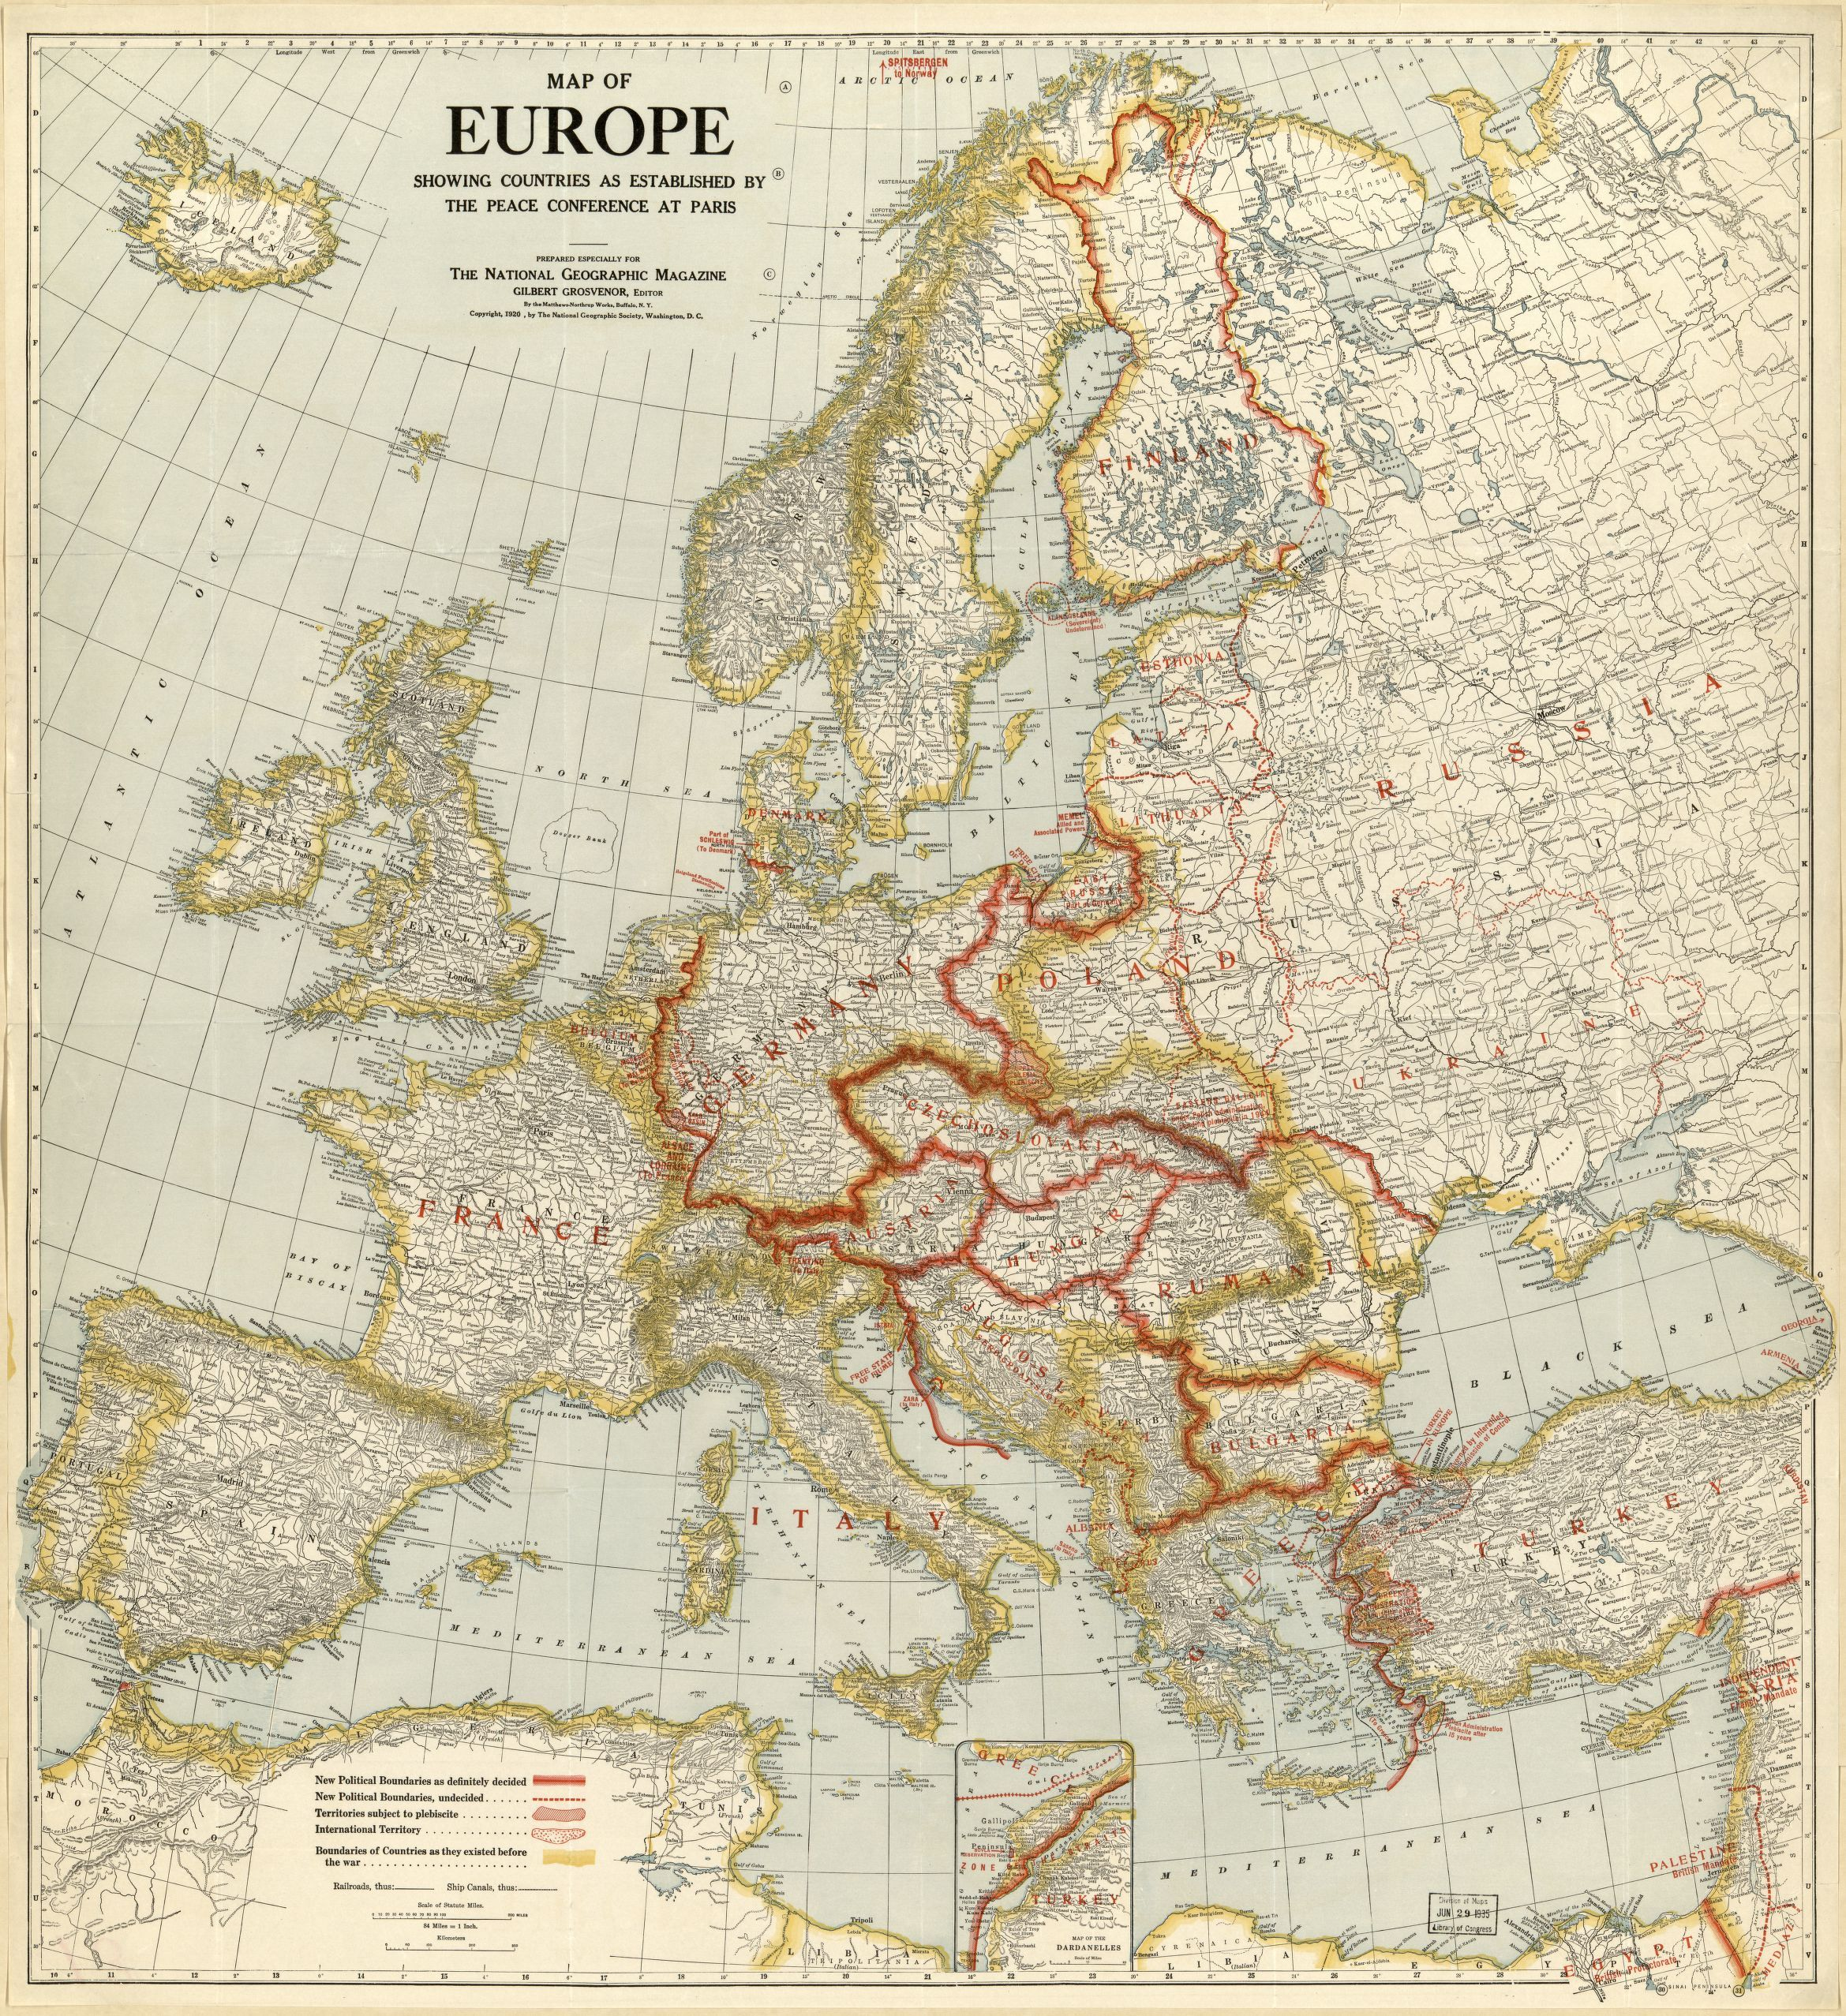 National Geographic 1920 Europe After Ww1 Map Europe Ww1